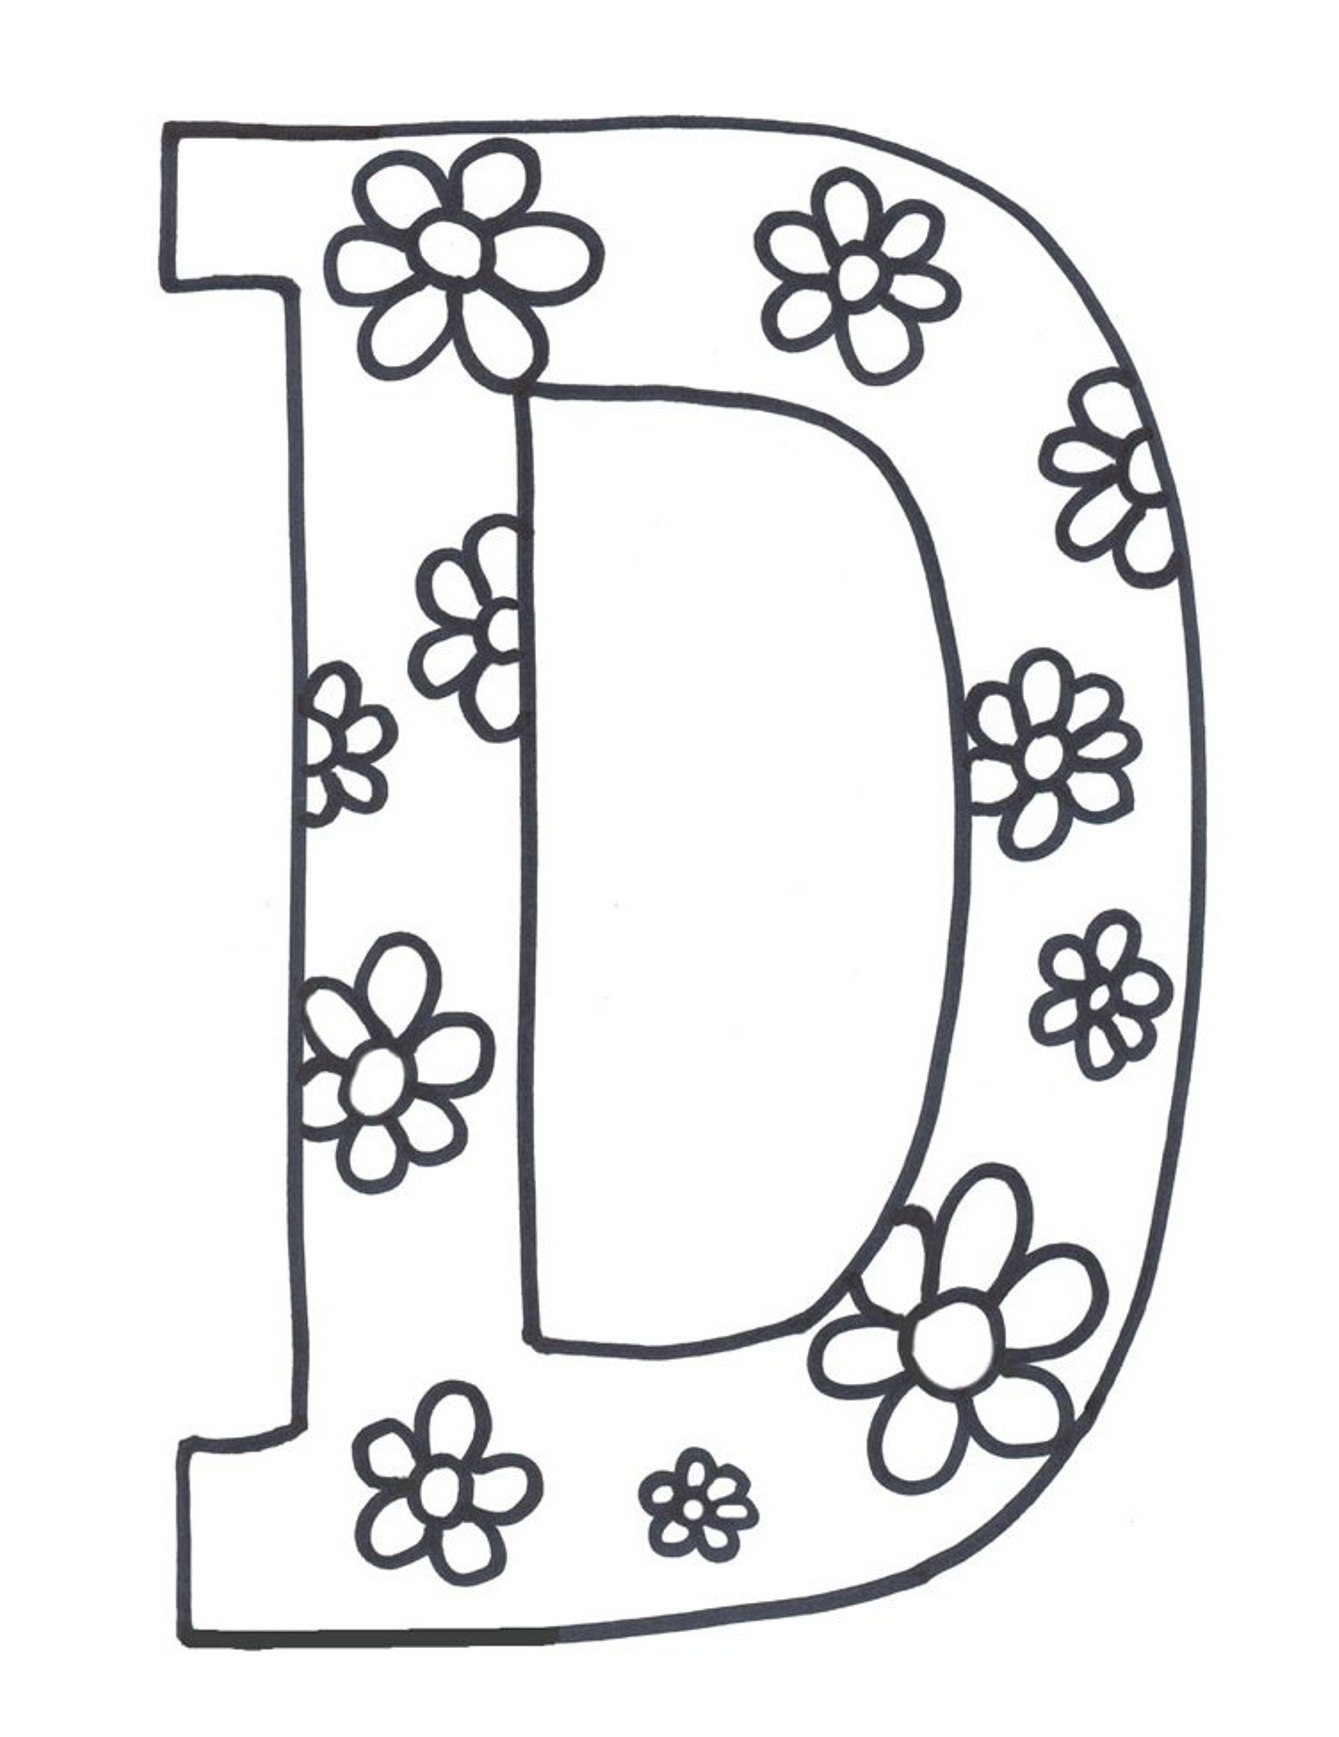 1339x1737 Coloring Pages Letter D Coloring Pages Letter D Letter D Free